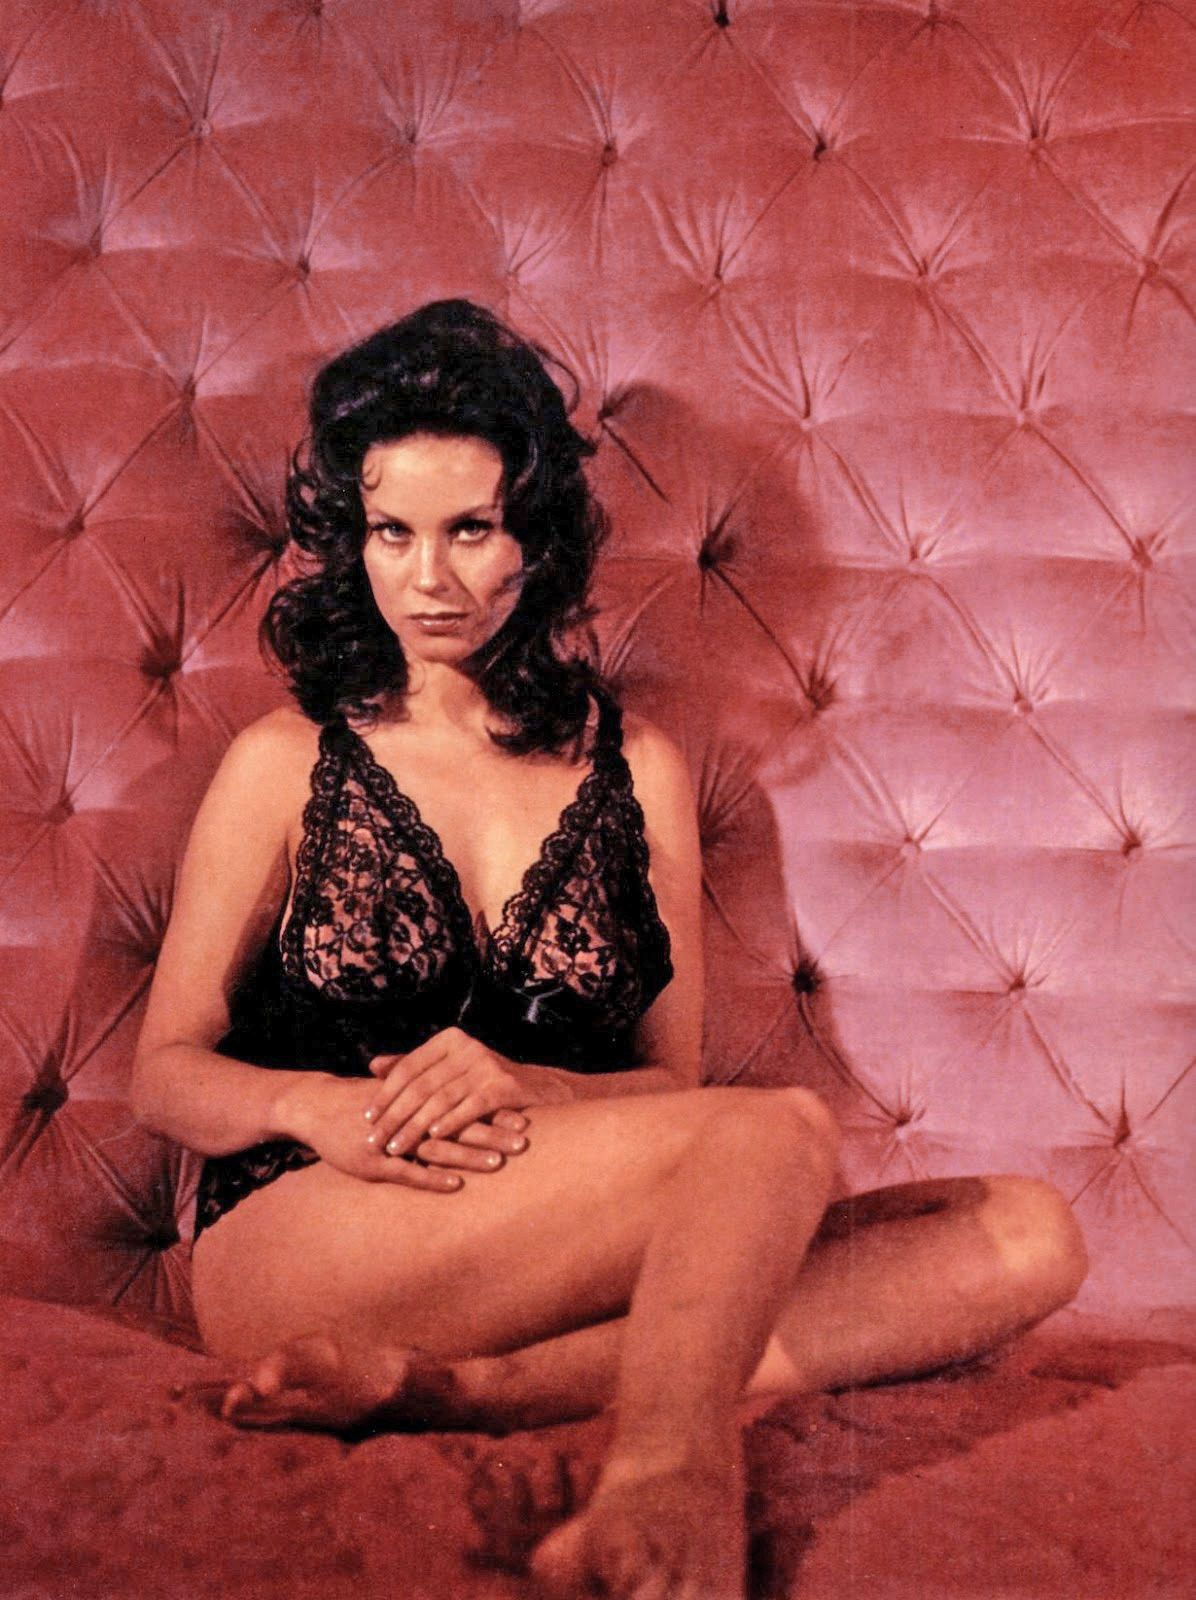 Lana Wood wearing lingerie, as she appears in the James ...